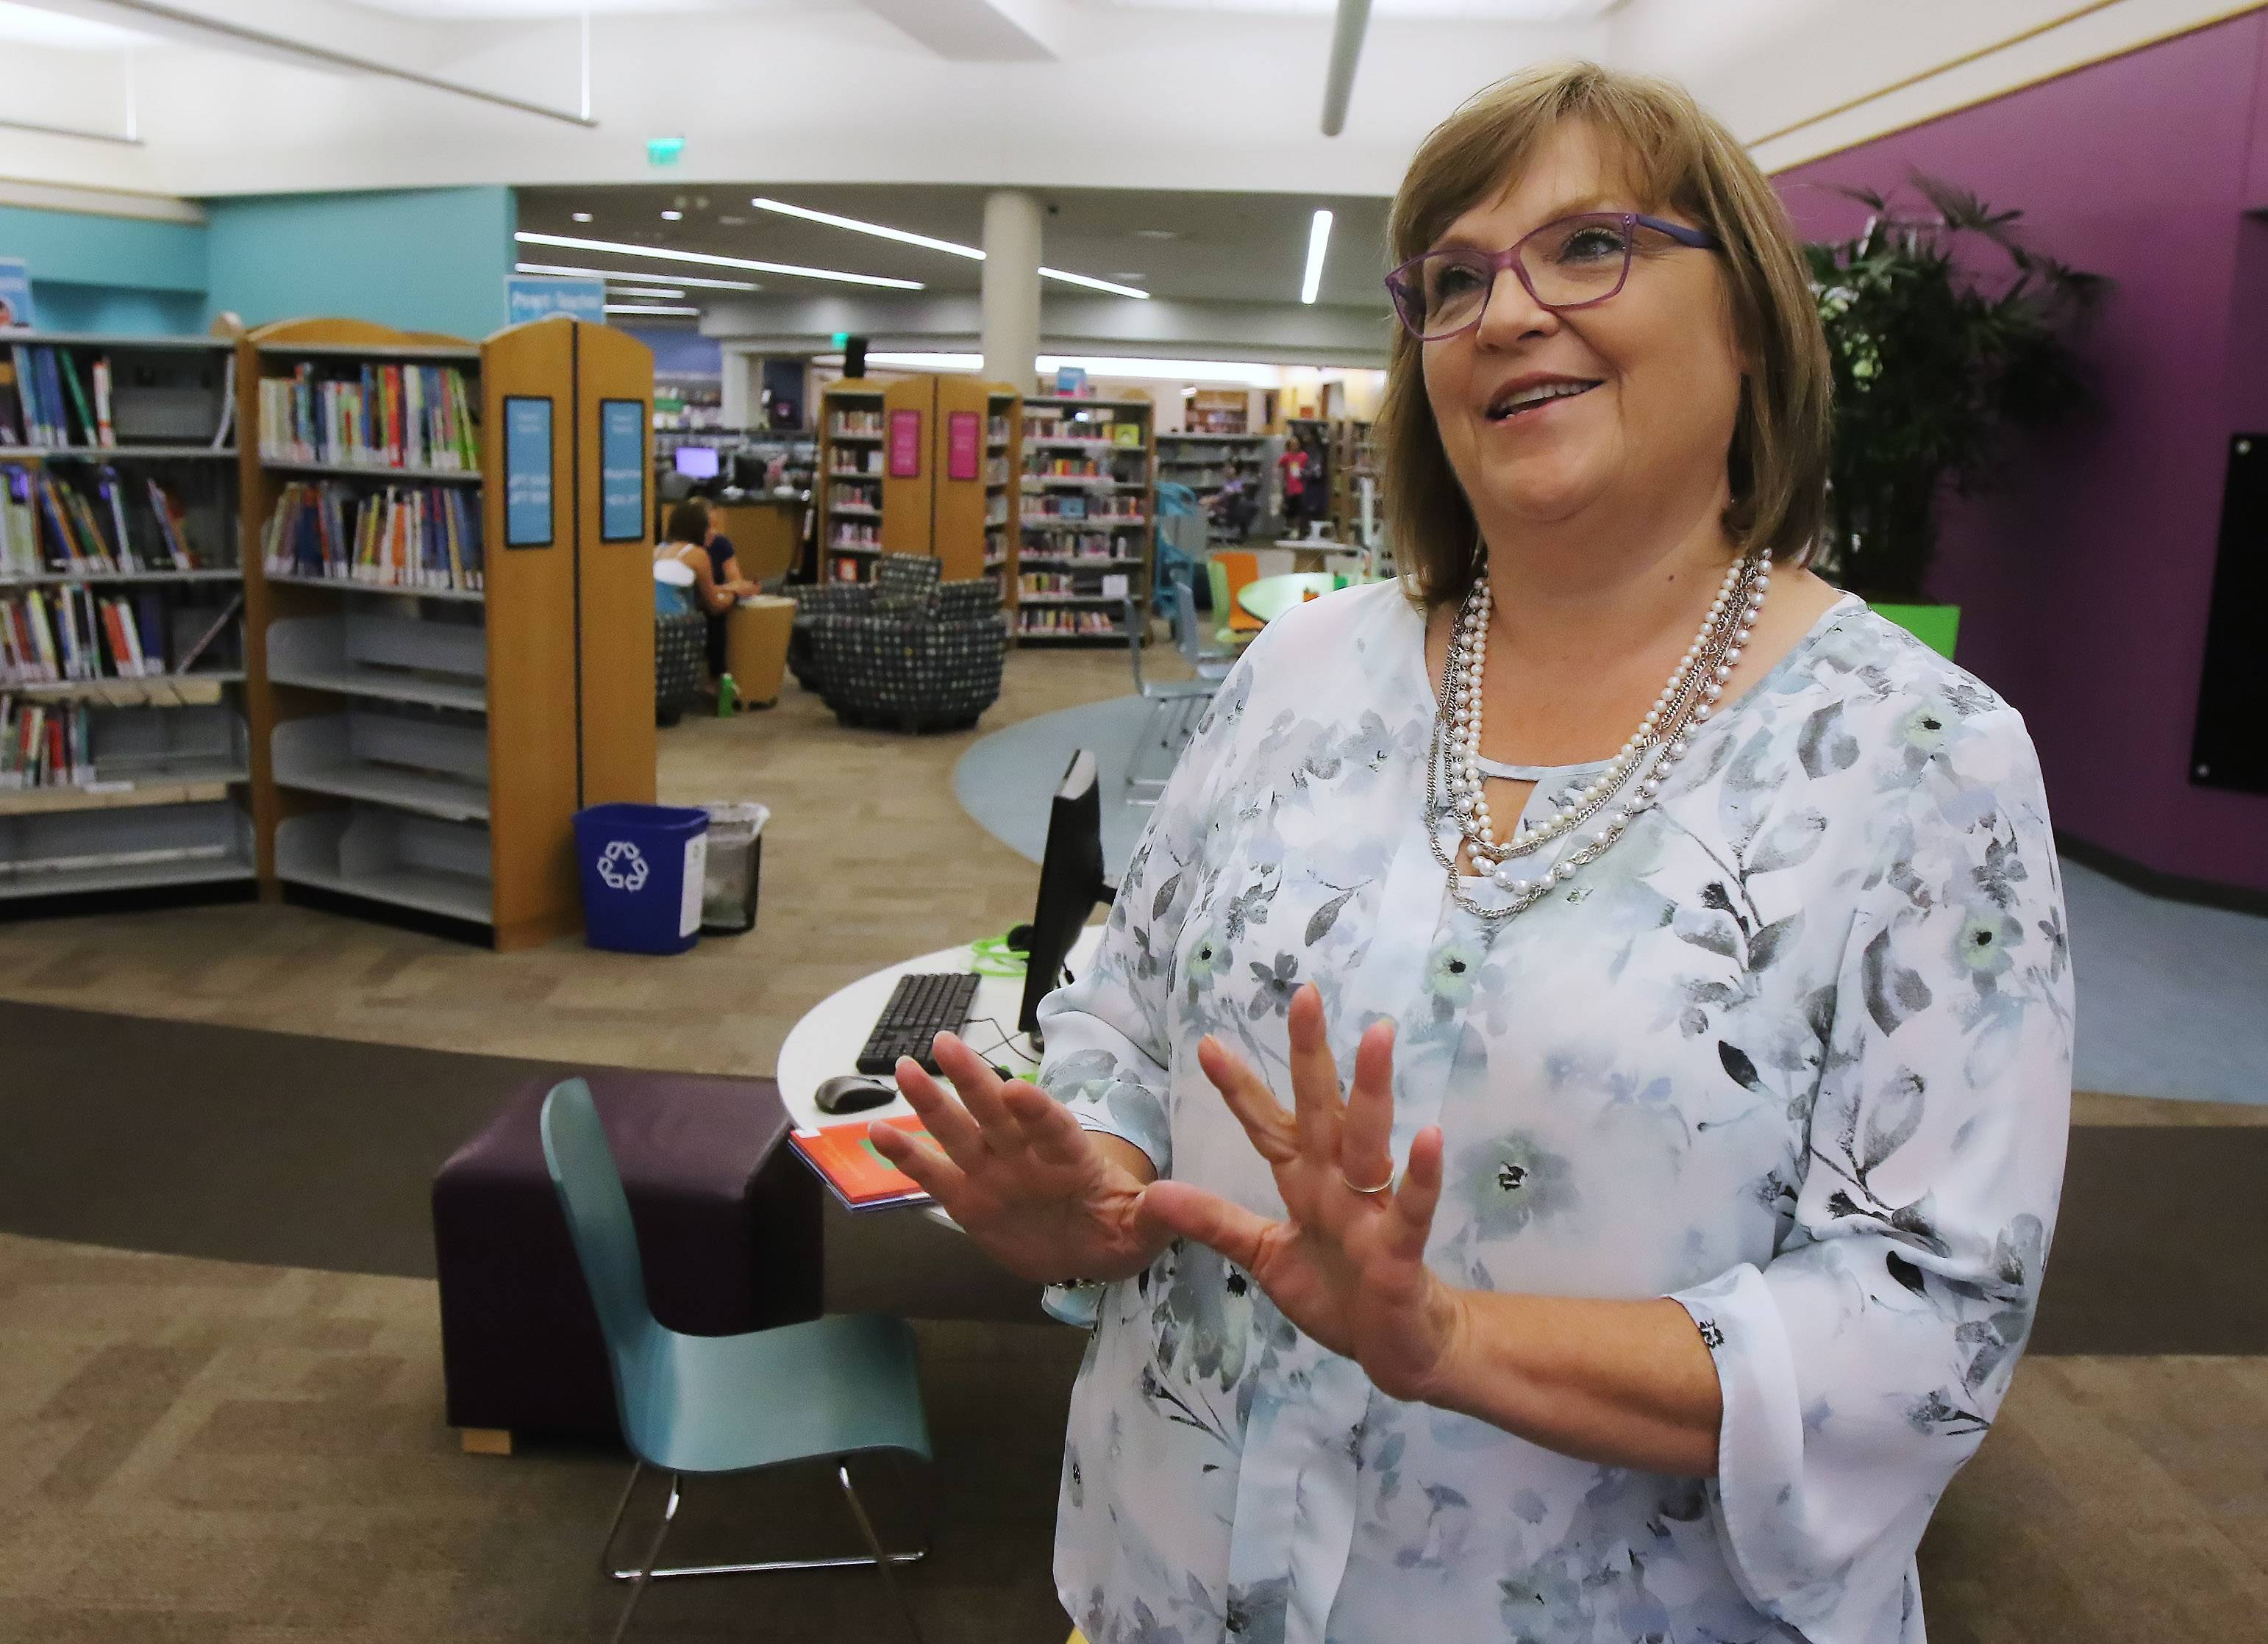 Vernon Area Library, patrons happier without late fees